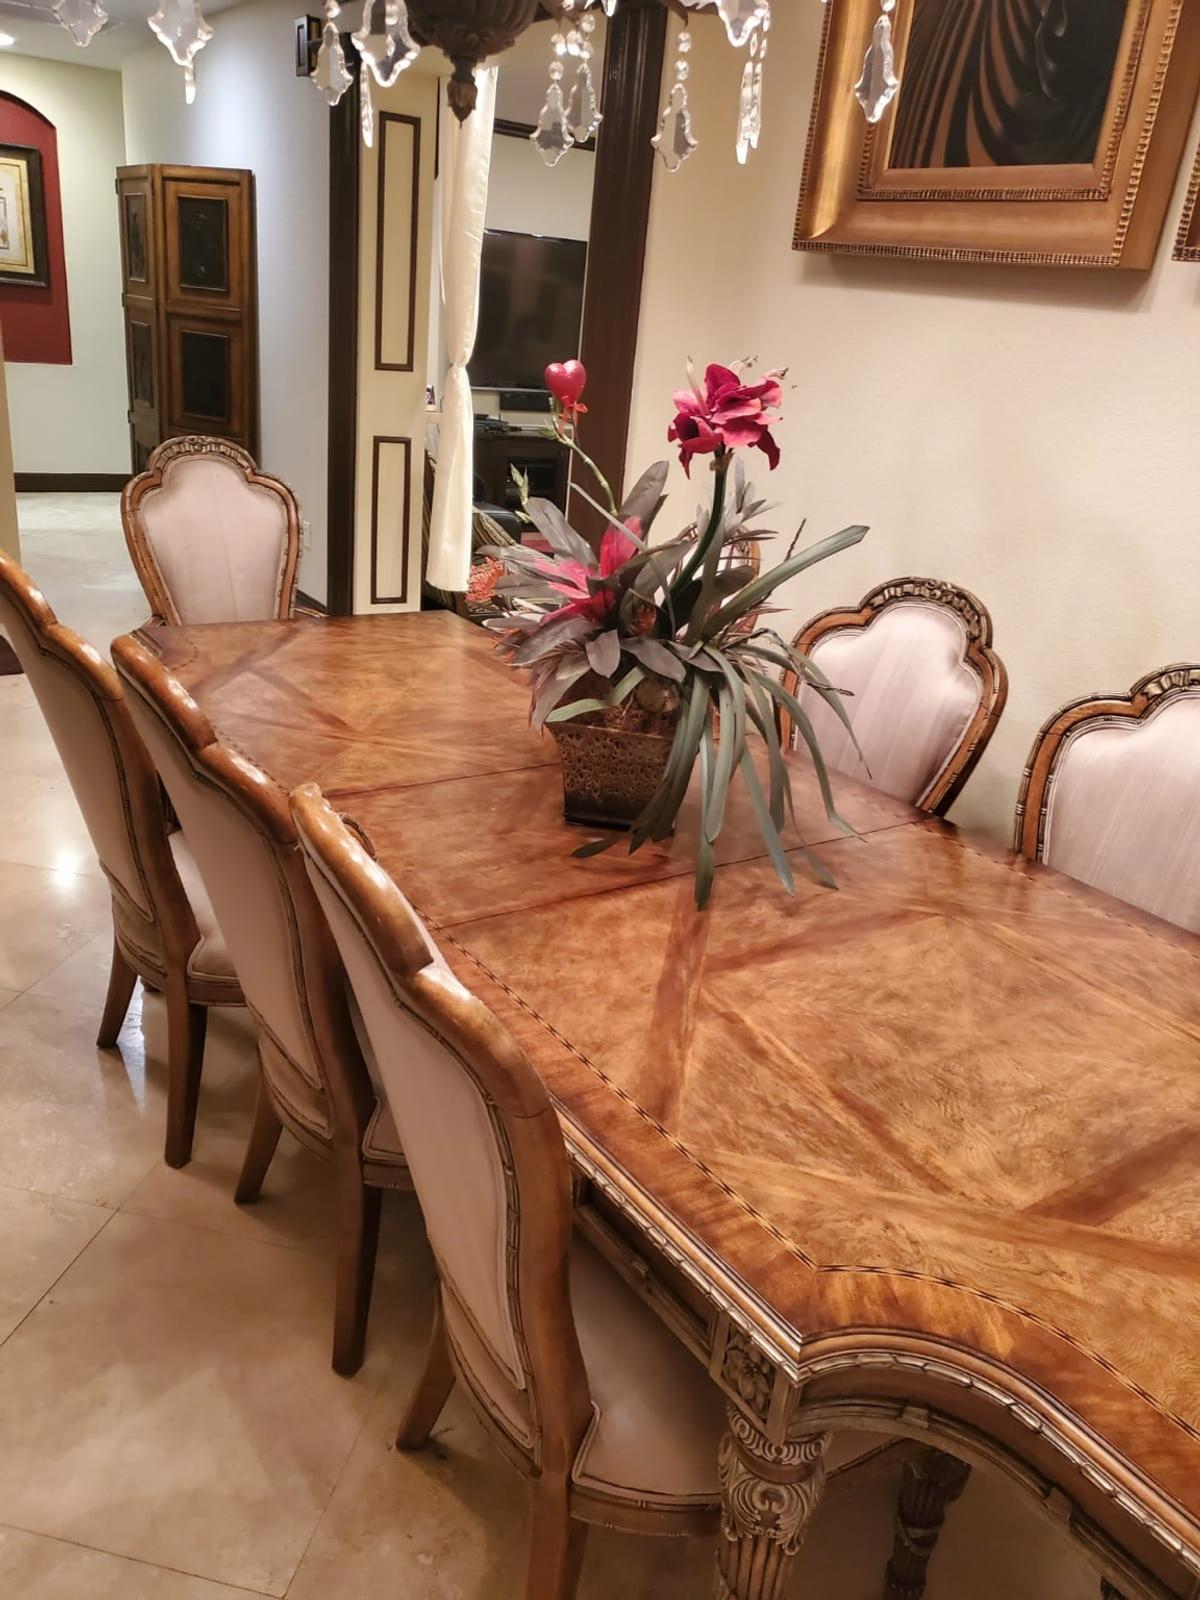 Dining Room Table With Chairs In 33498 Boca Raton For Us 1 800 00 For Sale Shpock